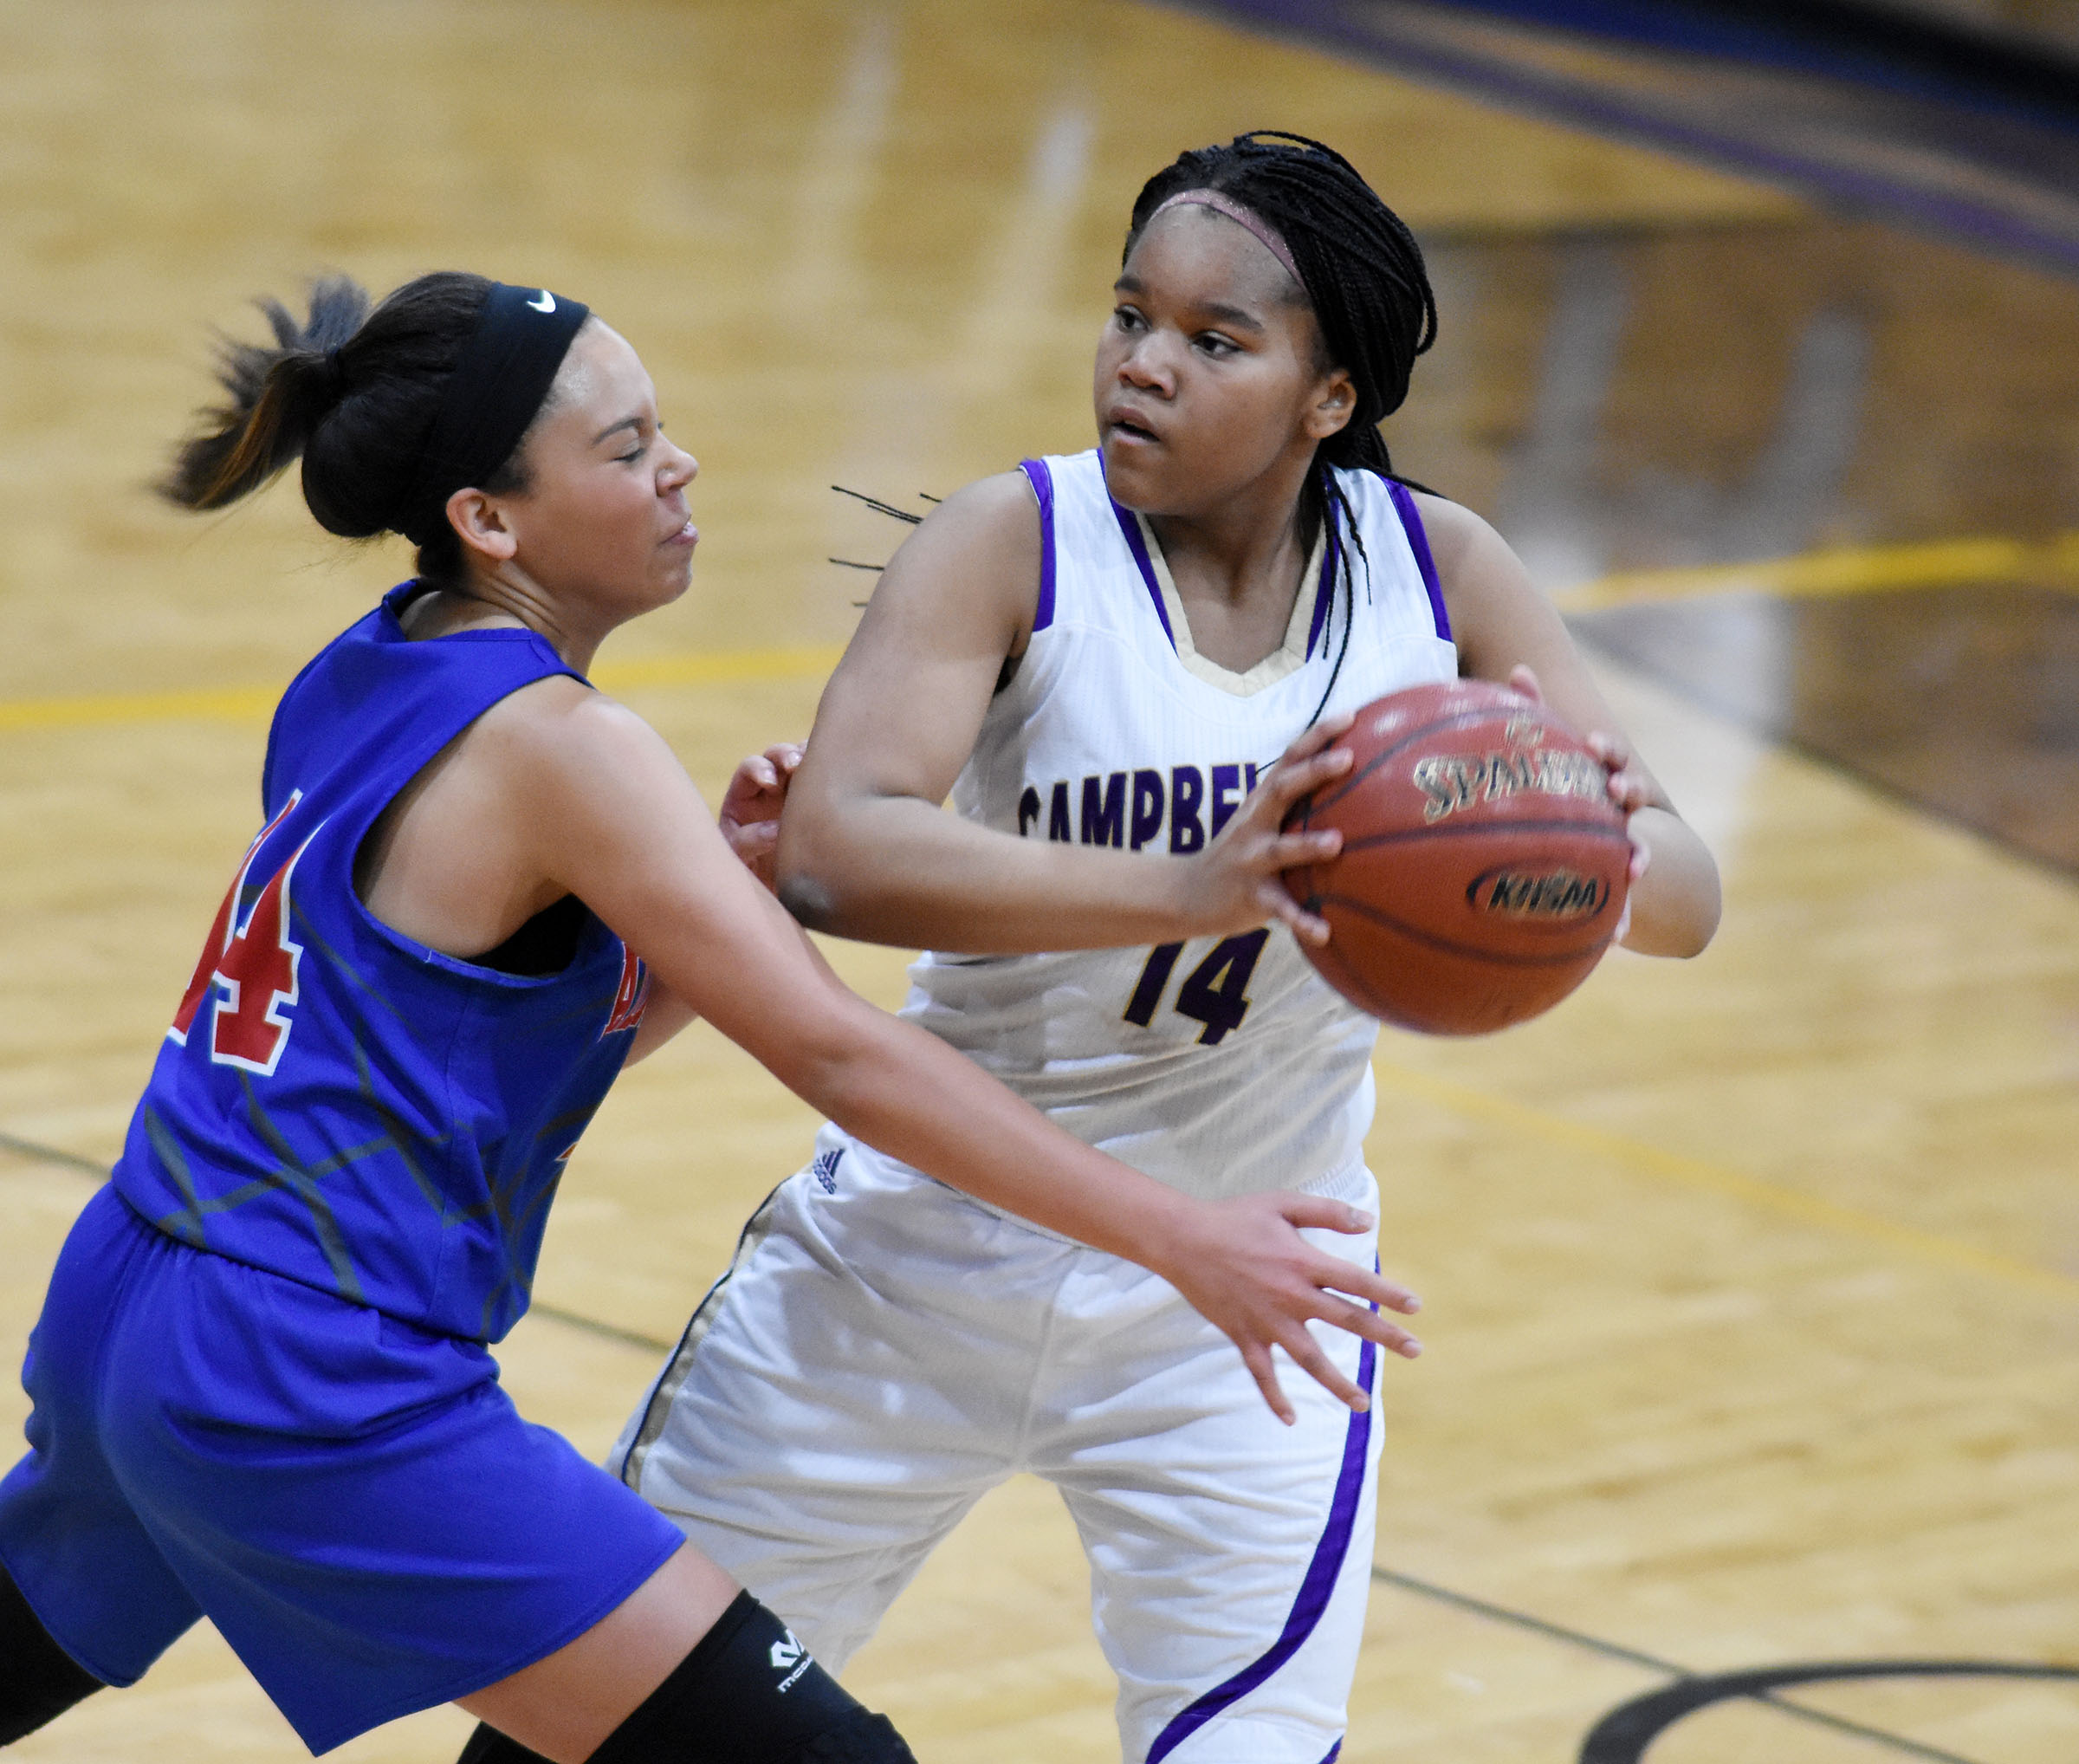 Campbellsville Middle School seventh-grader Antaya Epps looks to pass.